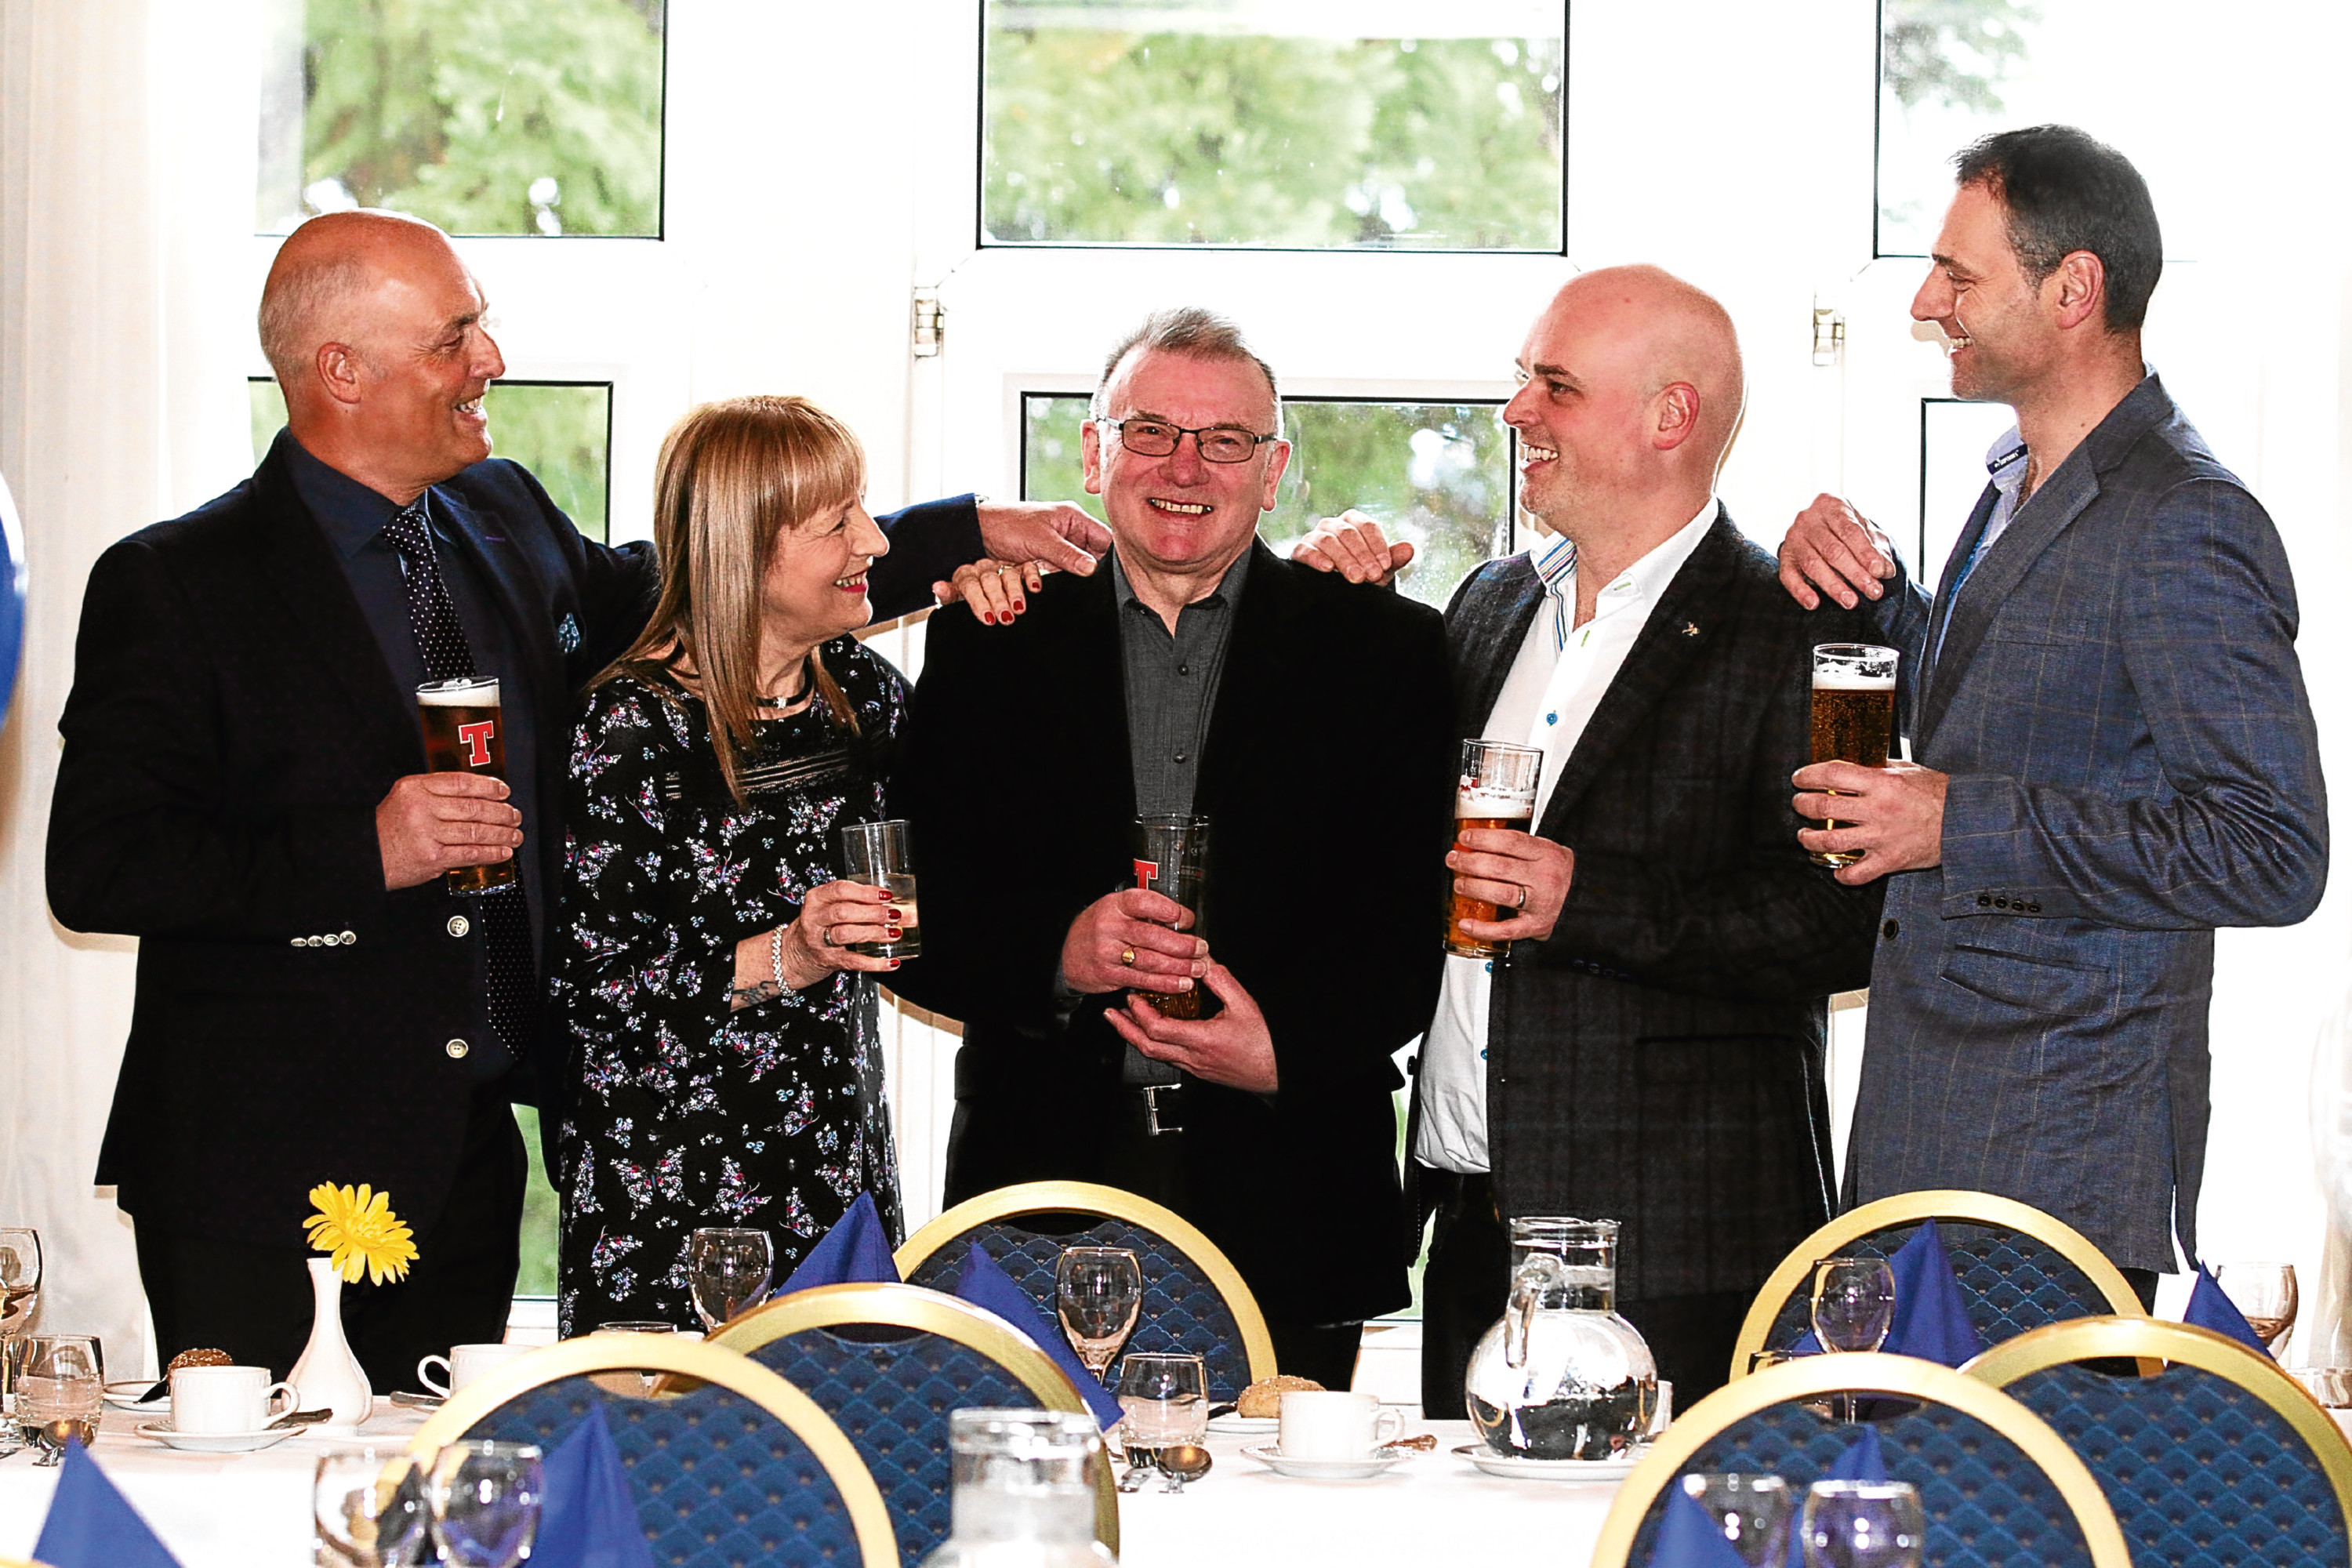 Doug, centre, pictured with his wife Jeanette and, from left, Jackson Steel Structures' managing director Stewart McArthur, engineer Stephen McArthur and director Mike Darcy.